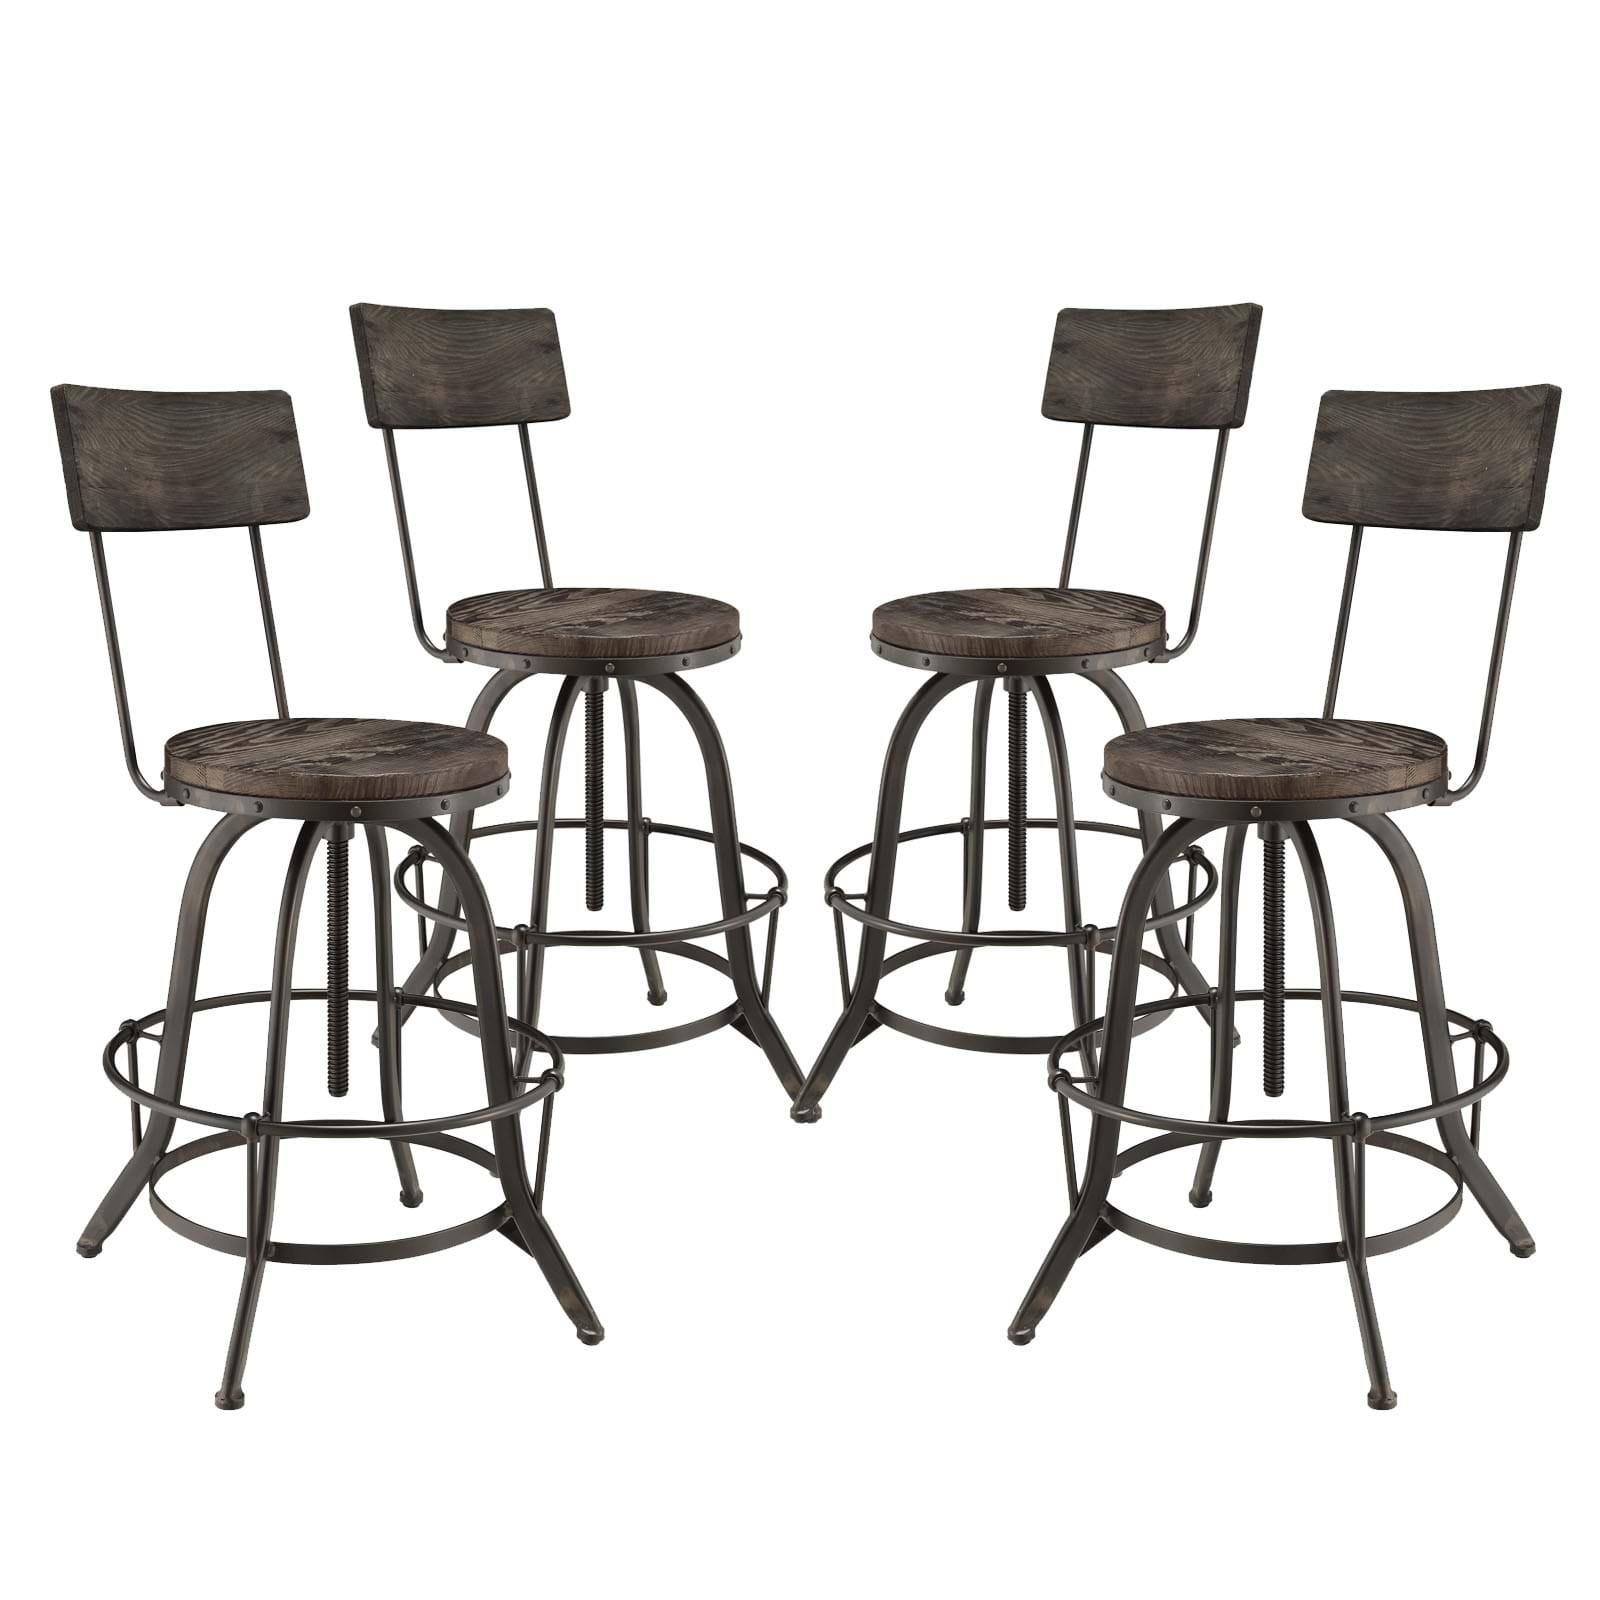 Procure Bar Stool Set of 4